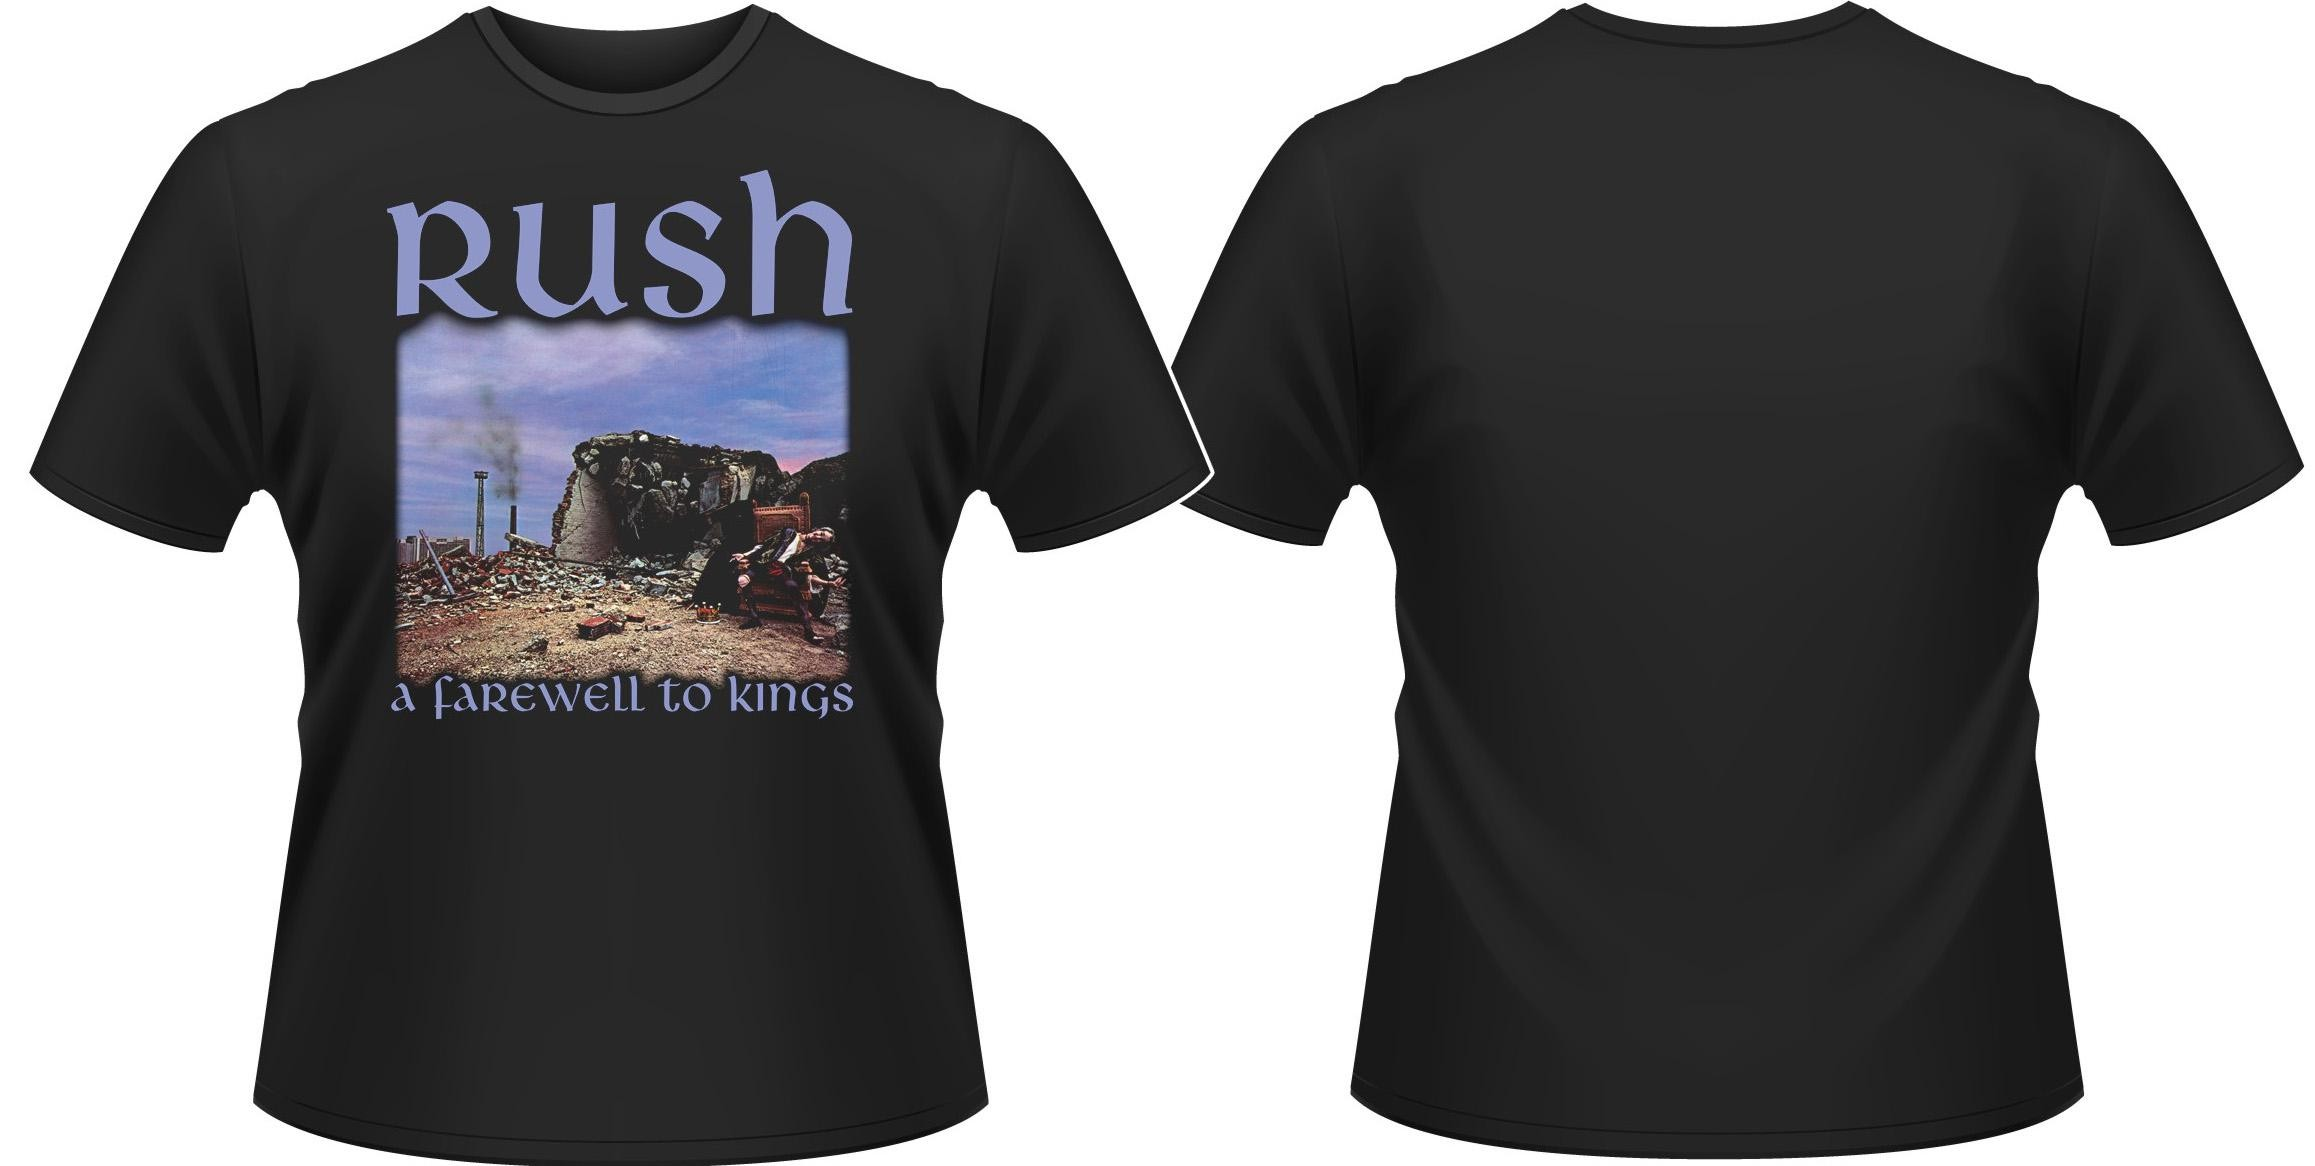 Rush - A Farwell To Kings - XXL